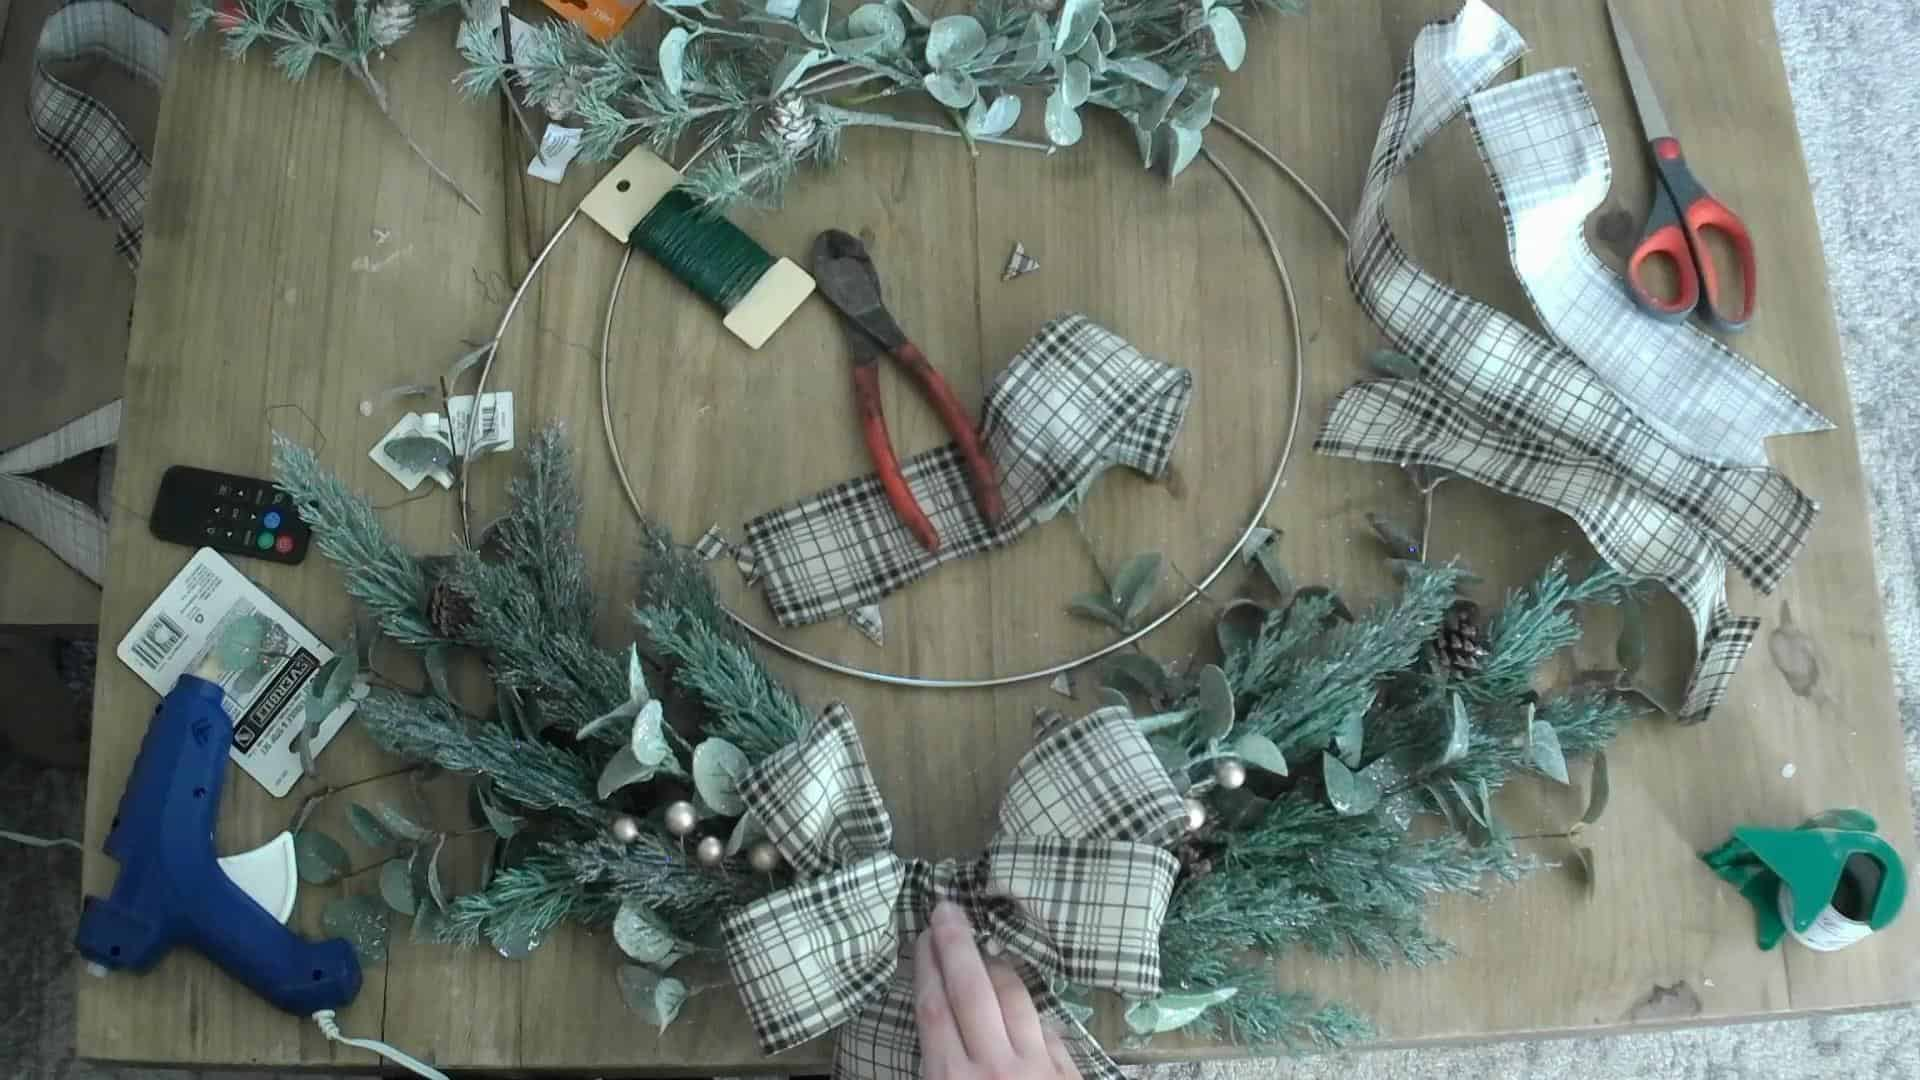 Attaching the bow to the DIY Christmas wreath